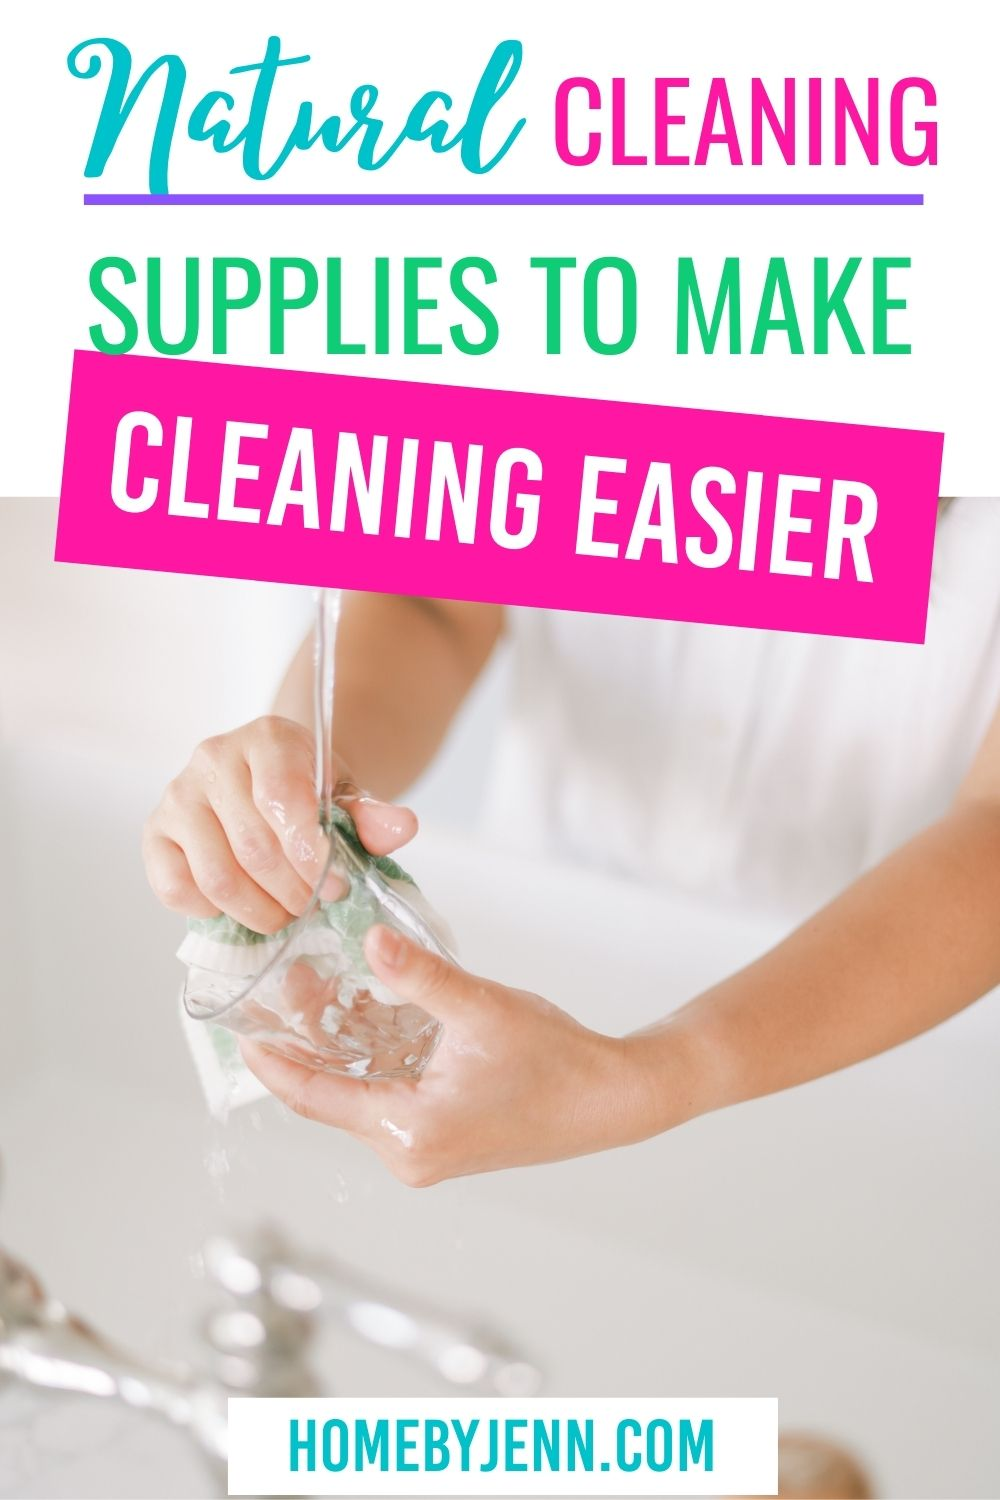 Here are the top cleaning supplies you need in your house. We all want our kitchens to stay as clean as possible. After all, it's where we prepare food for our families. It should be cleaned thoroughly to remove any germs that might make your family sick. via @homebyjenn